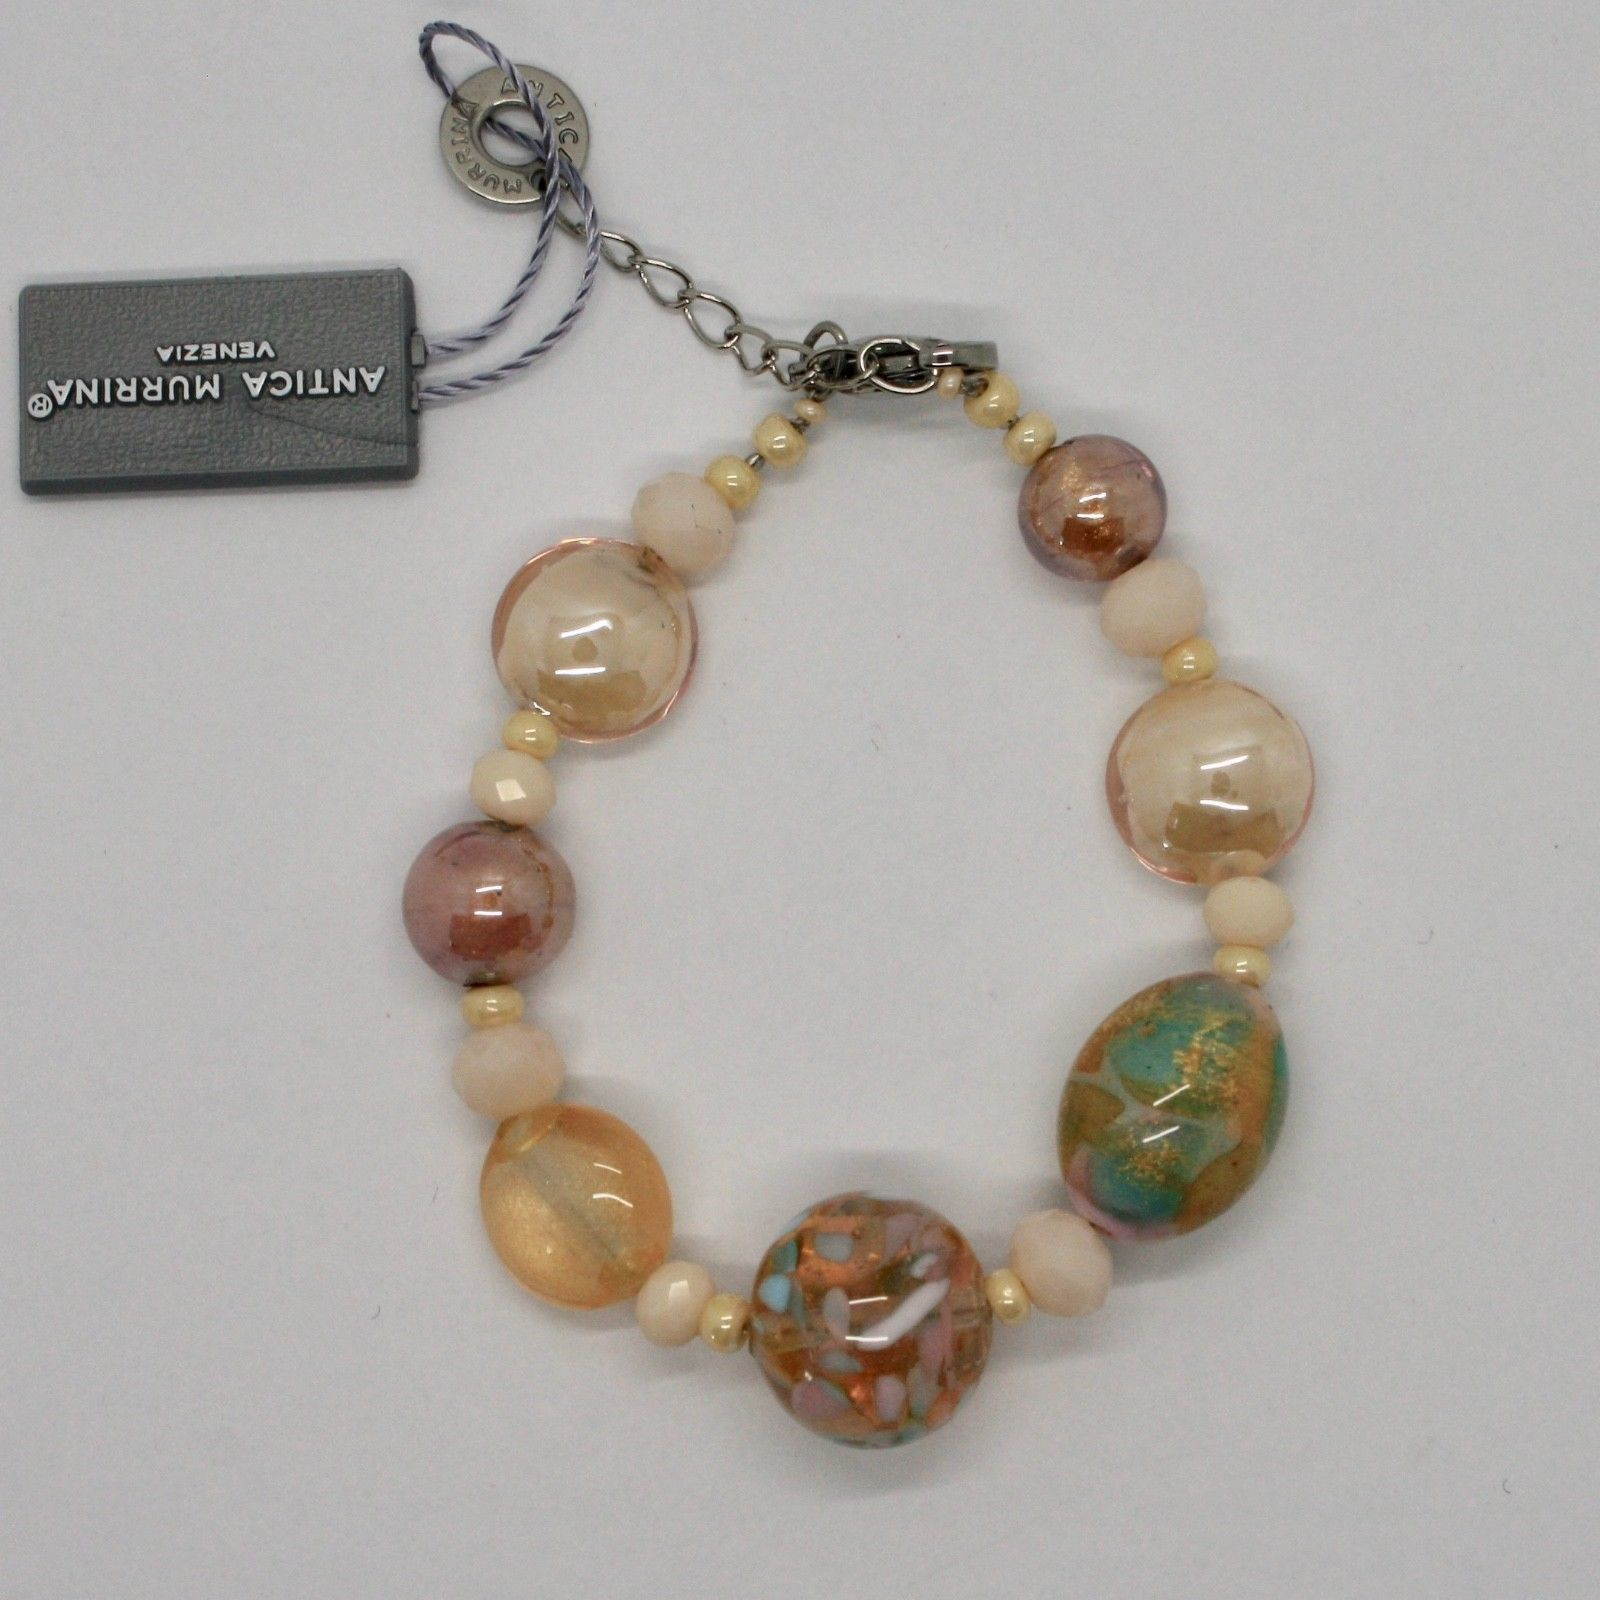 BRACELET ANTICA MURRINA VENEZIA WITH MURANO GLASS BEIGE PINK YELLOW BR796A03